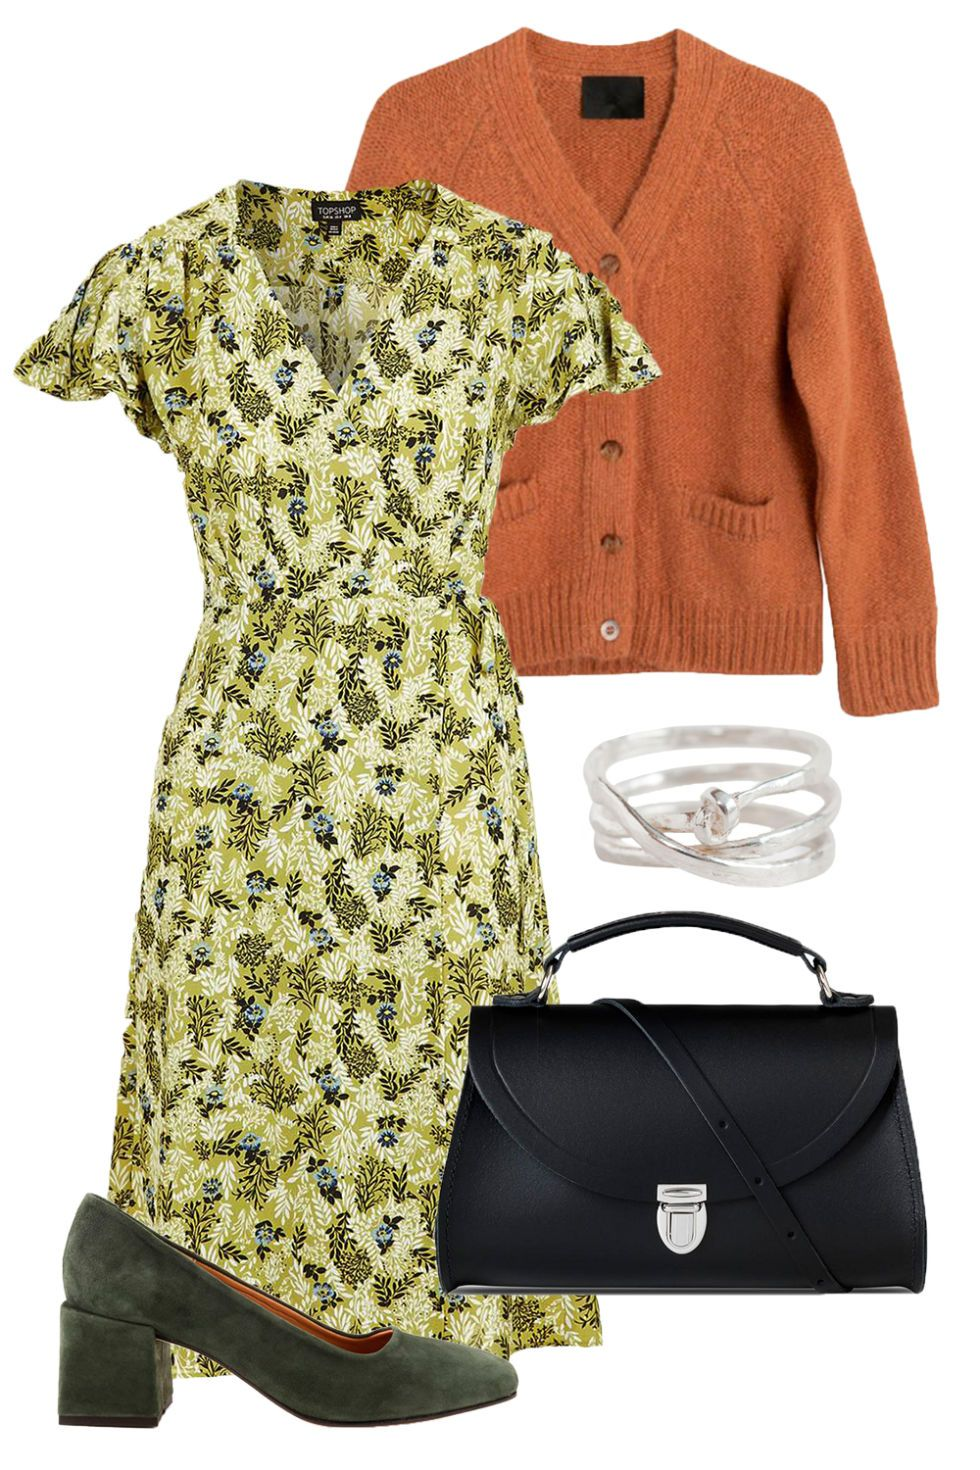 364431e1c 5 Holiday Outfits That Are Comfortable Yet Chic. Thanksgiving outfit ideas  by Elle. Great ideas for concealing the food bulge and staying comfortable  all ...